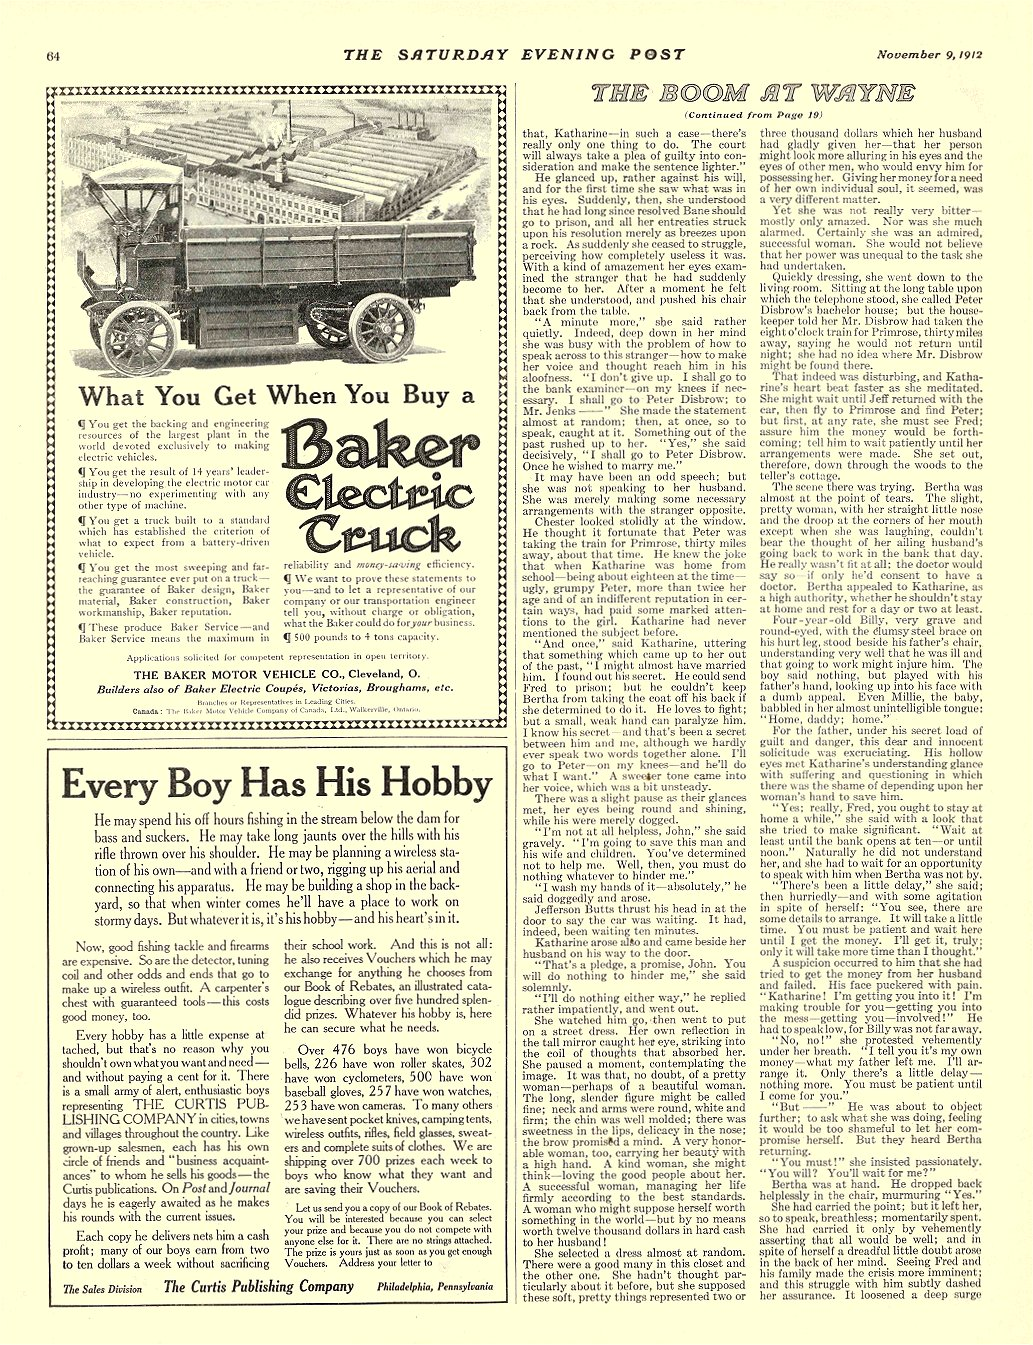 1912 11 9 BAKER Electric Truck What You Get When You Buy a THE BAKER MOTOR VEHICLE CO. Cleveland, OHIO THE SATURDAY EVENING POST November 9, 1912 11″x14″ page 64